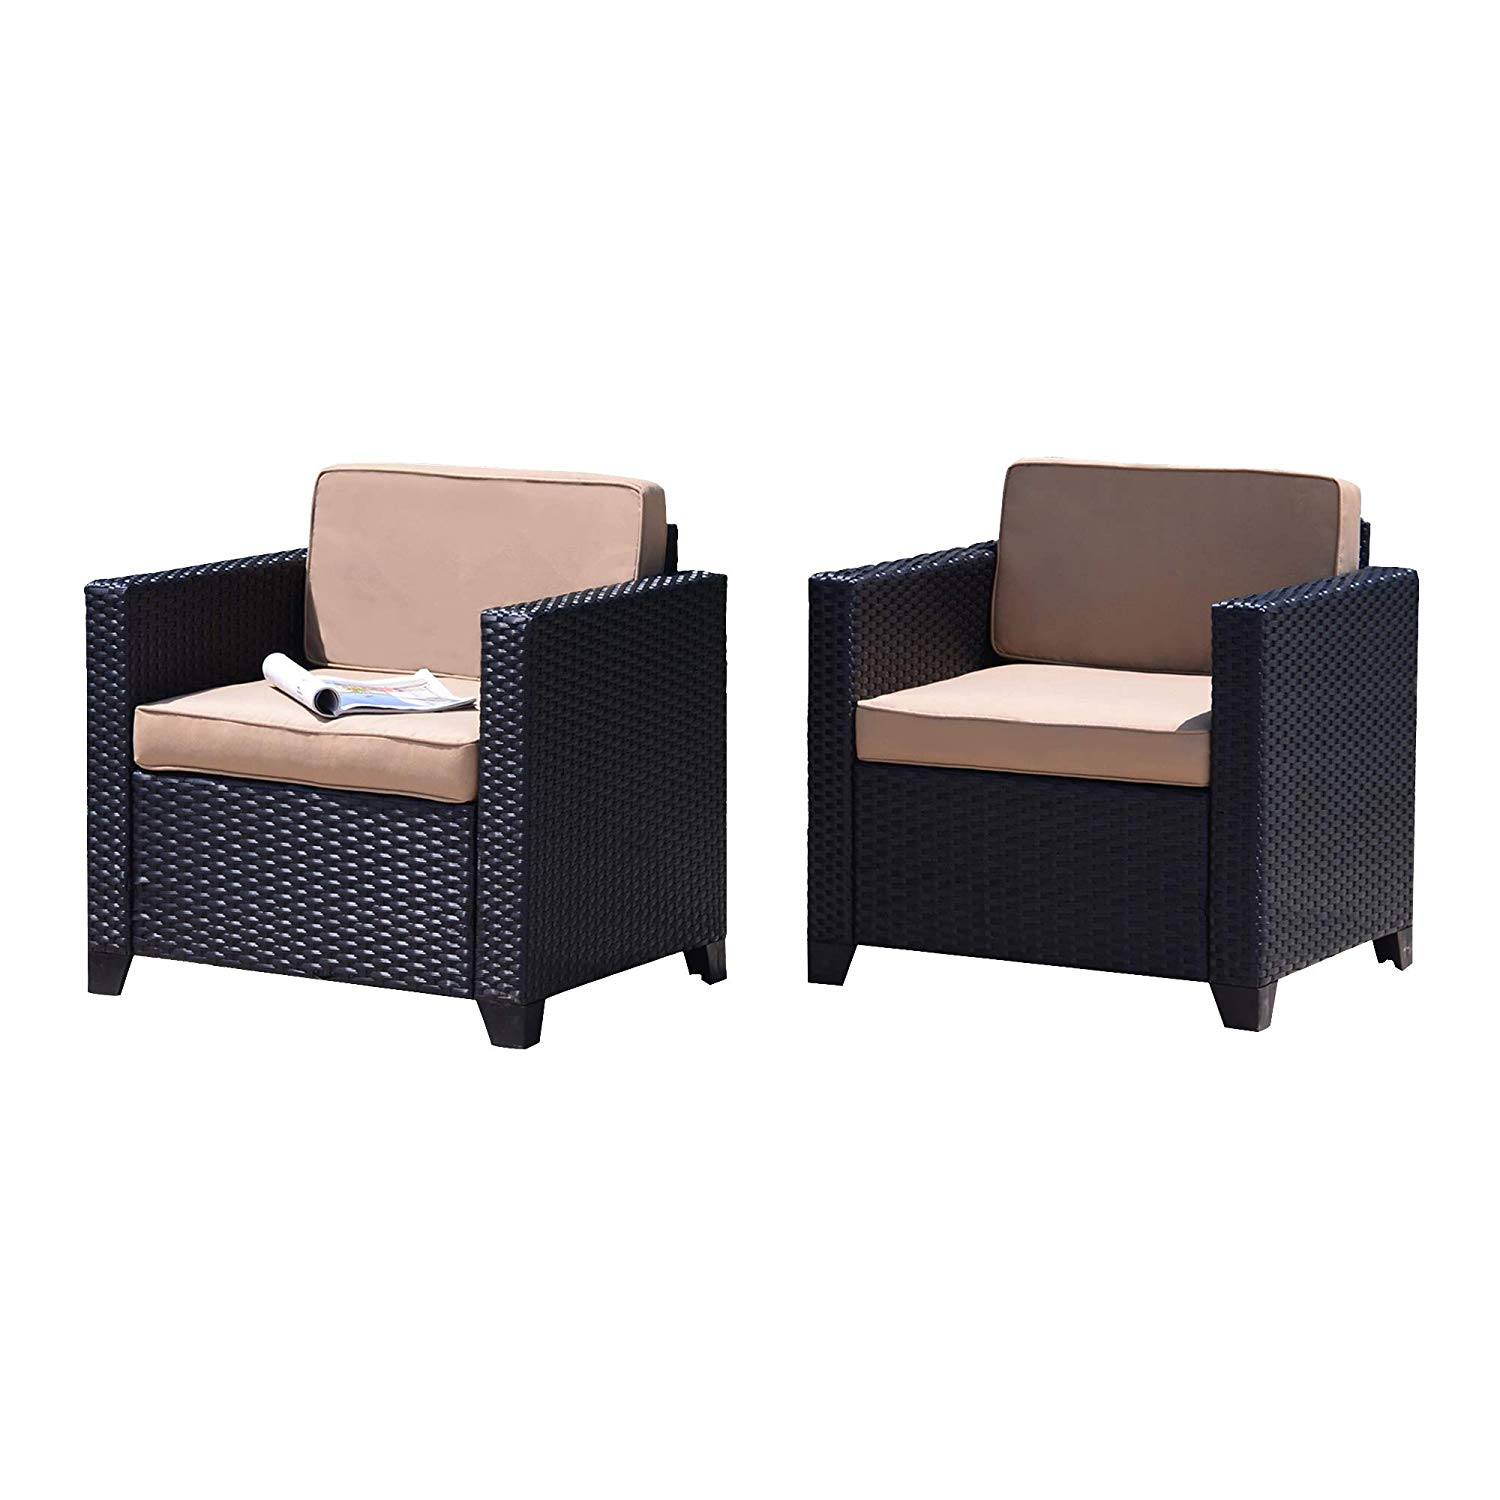 cheap chair cushions outdoor small scale upholstered swivel chairs garden find get quotations furniture wicker club 2 pc patio rattan dining sofa seating